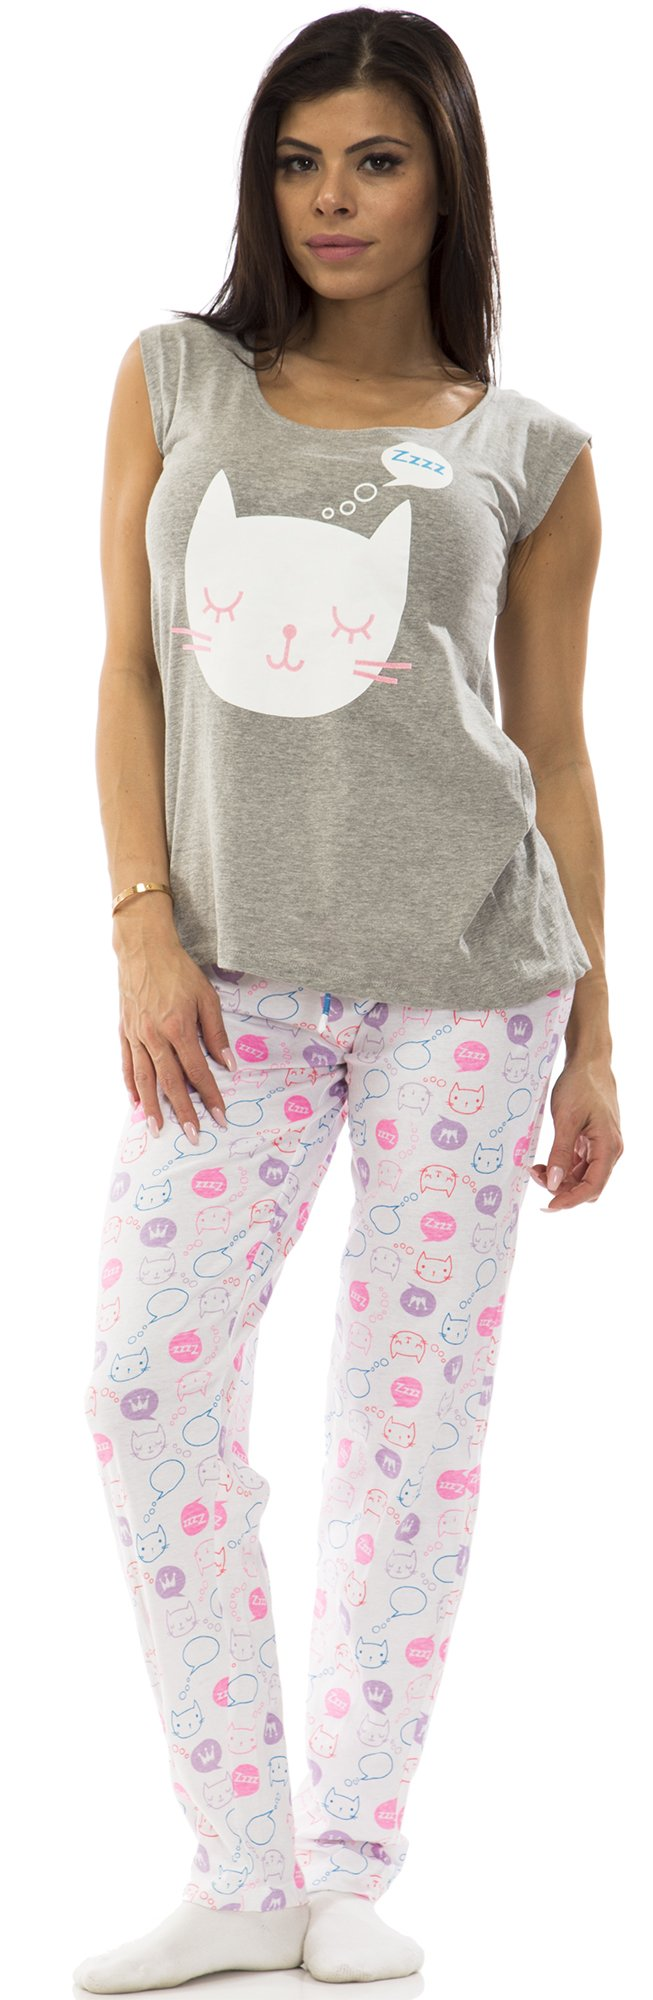 dollhouse (6708DH) Womens 100% Cotton Keyhole Top and Pant 2pc Lounge Pajama Set Size: Large In Gray Kitty (020)